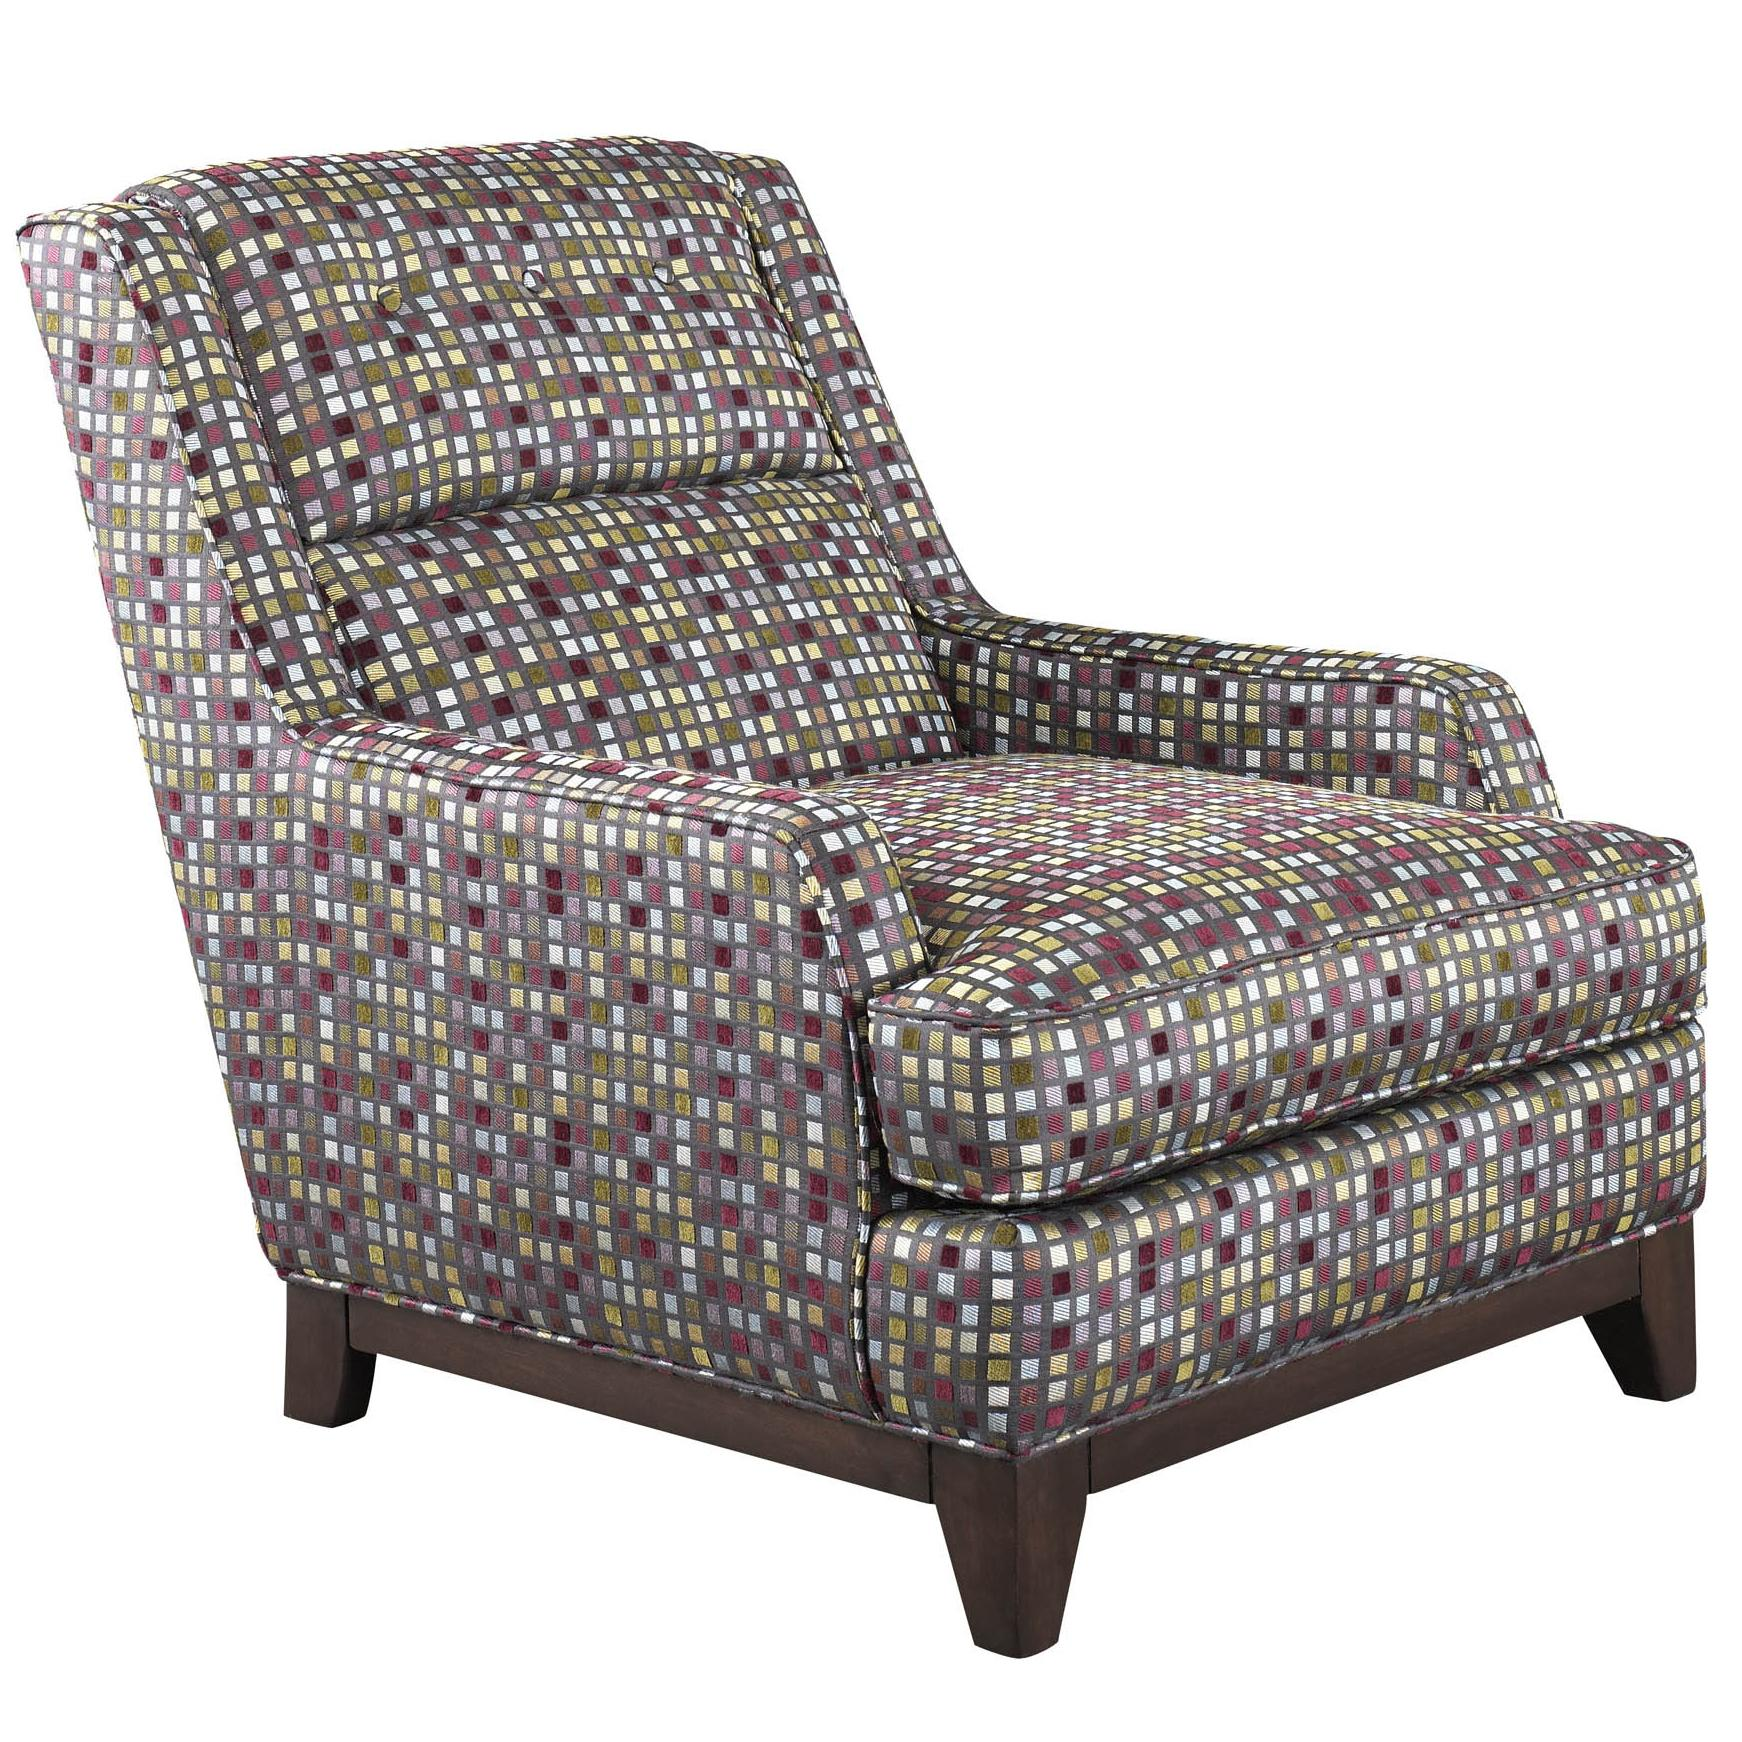 Astoria Upholstered Chair at Williams & Kay